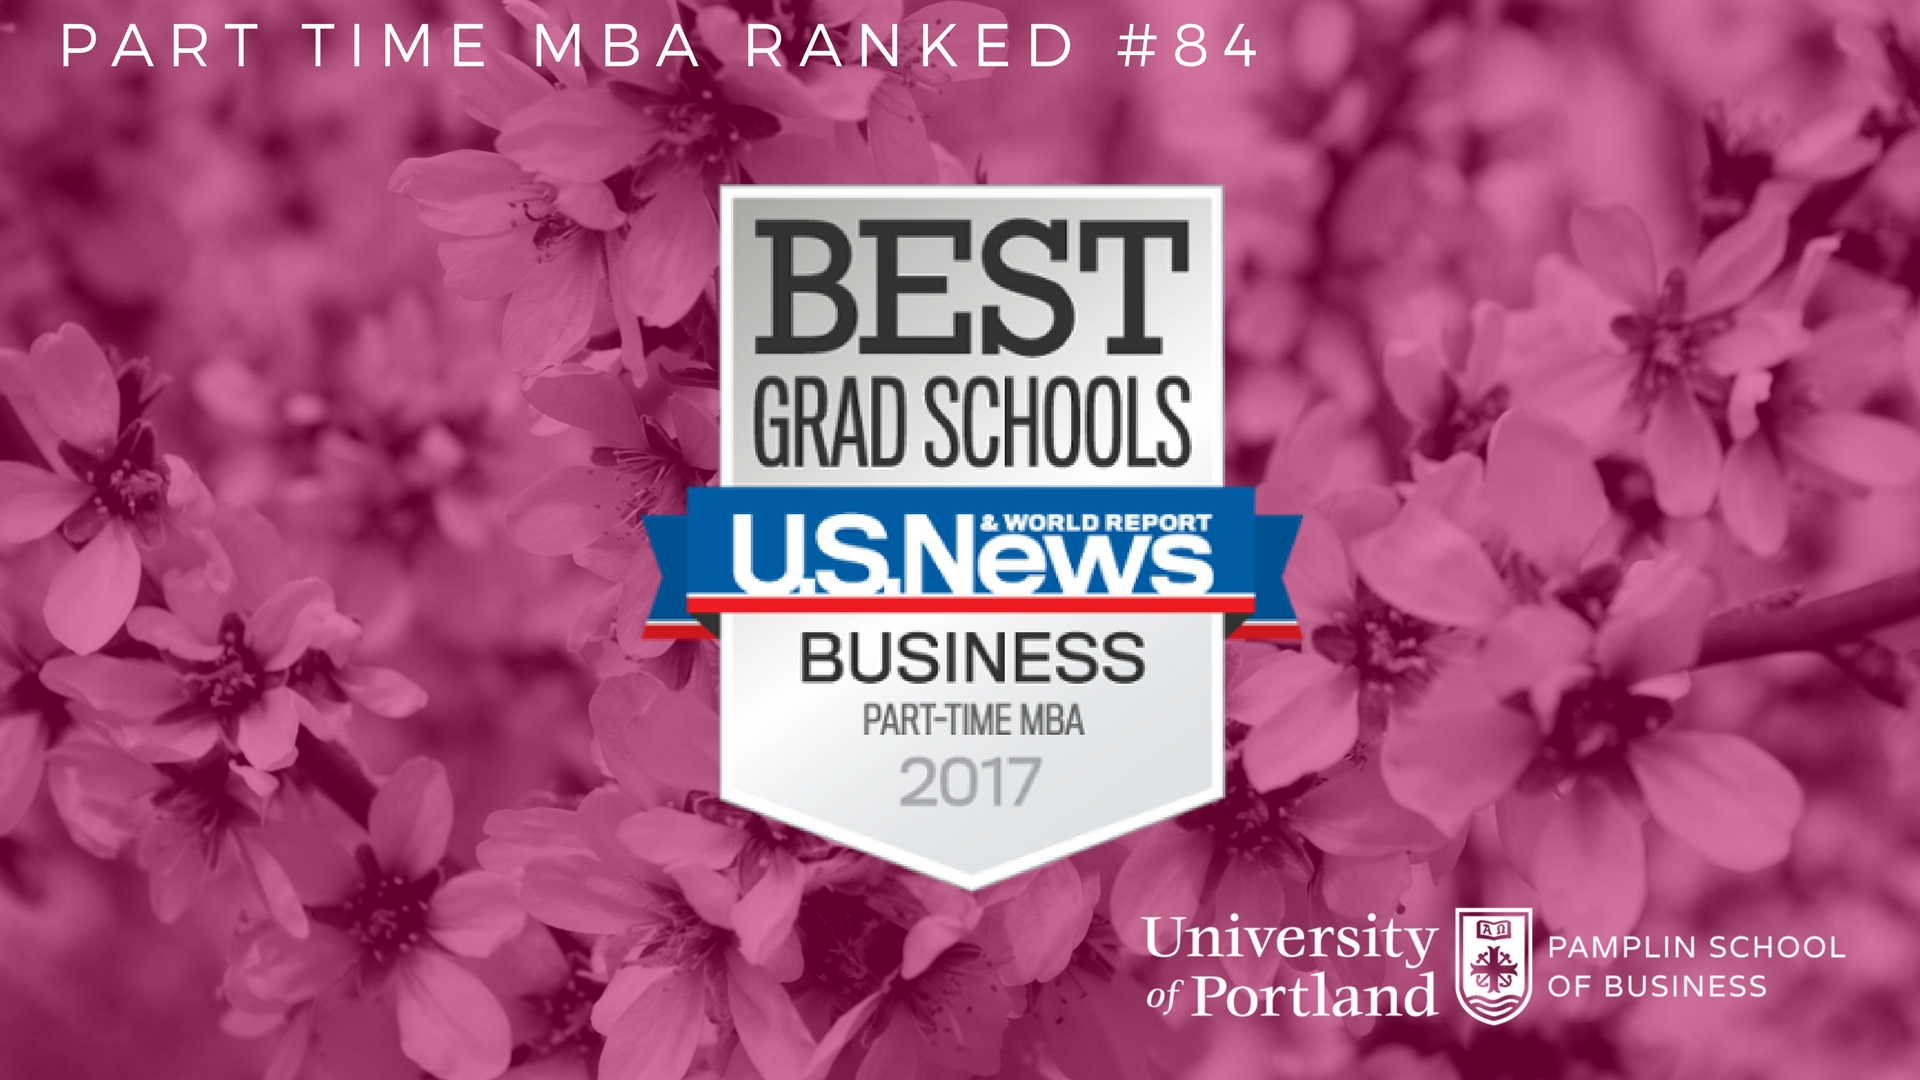 Best part time MBA program in Oregon and 84th in the nation.